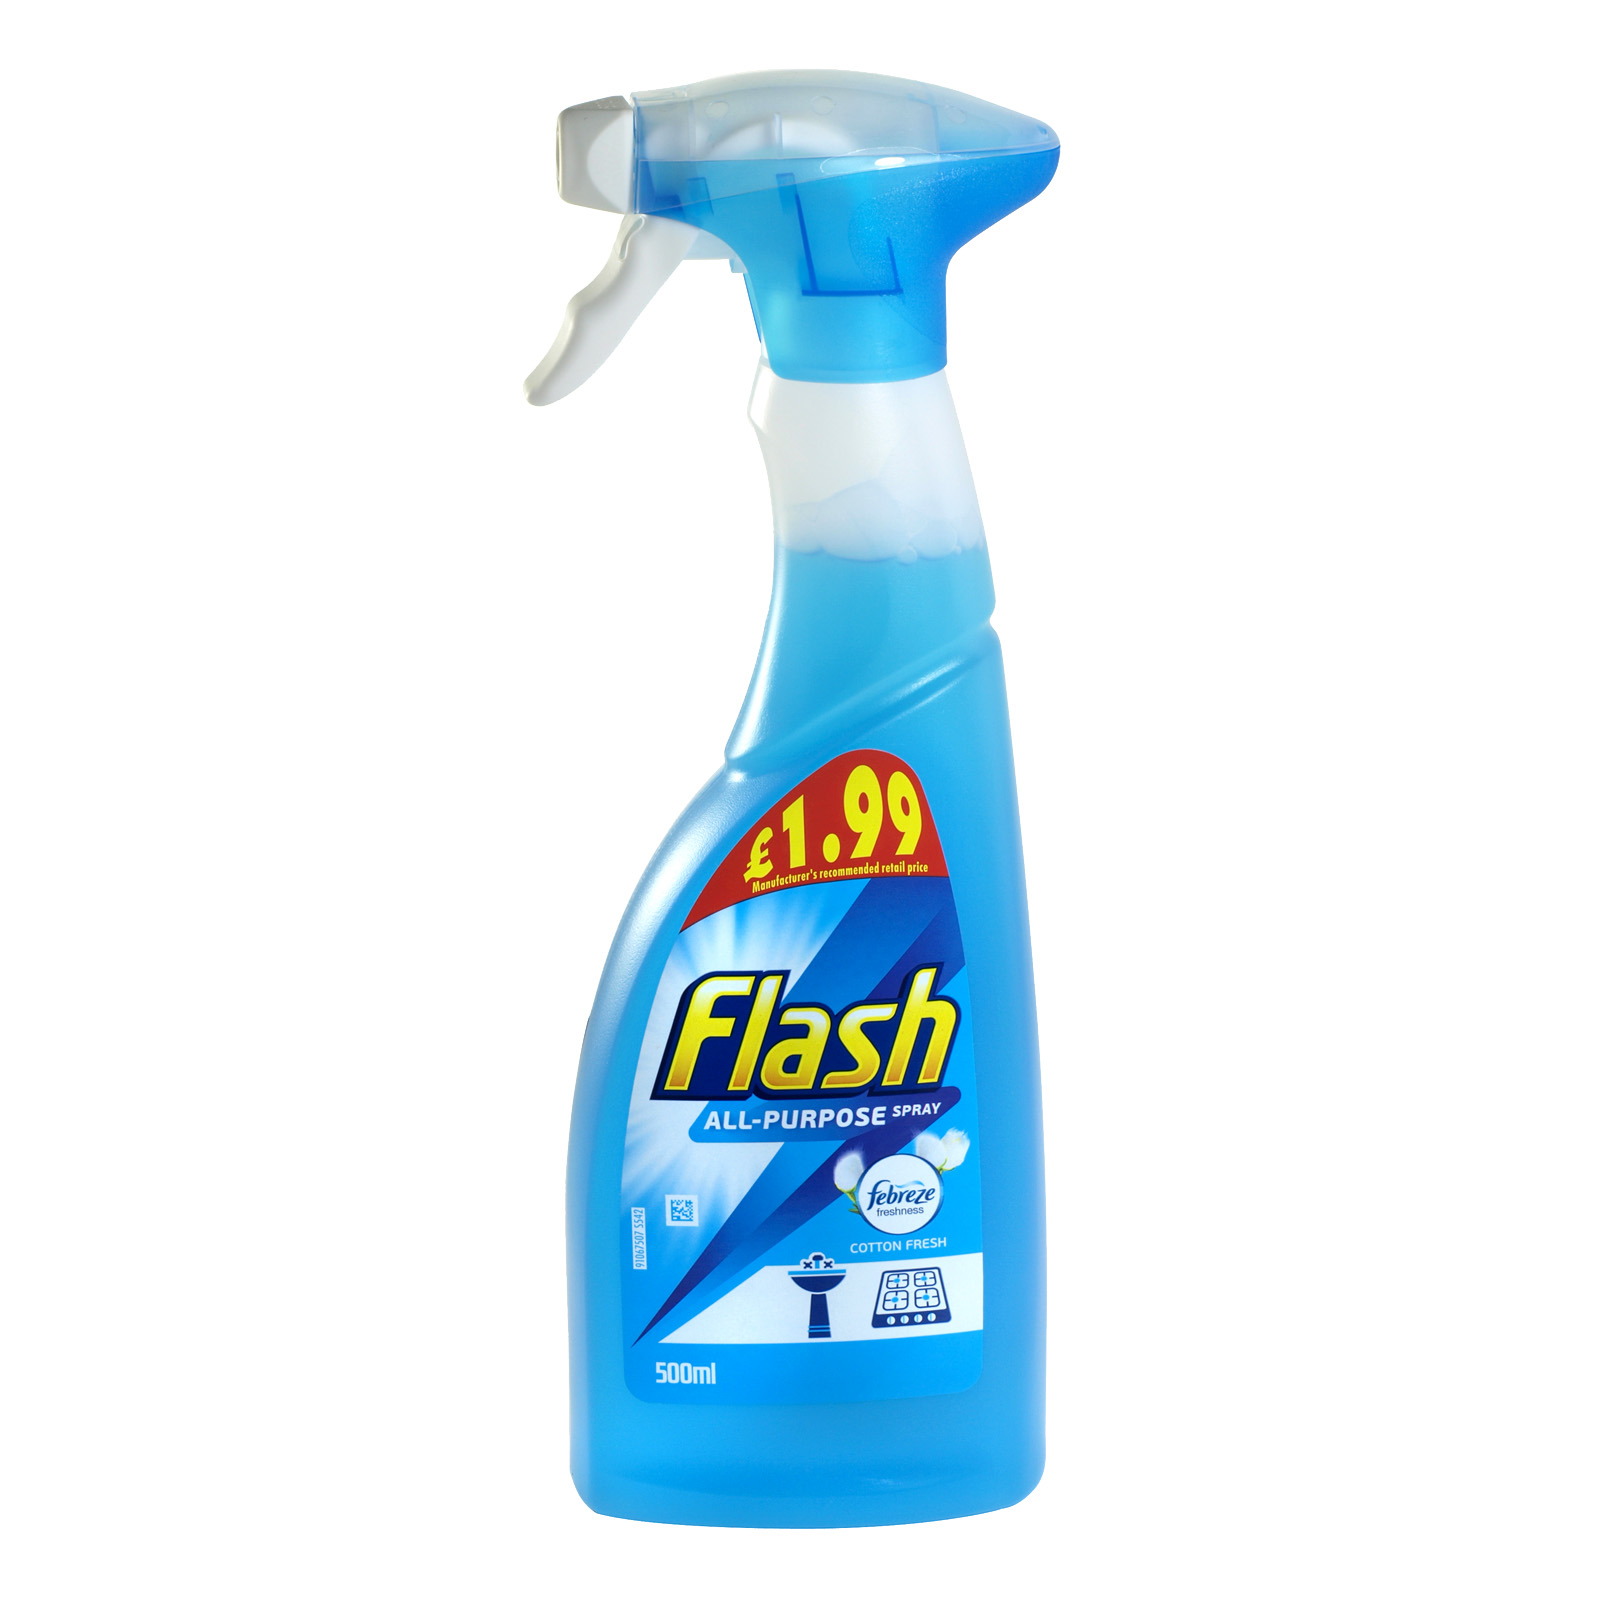 FLASH SPRAY 500ML ALL PURPOSE COTTON FRESH PM £1.99 X6